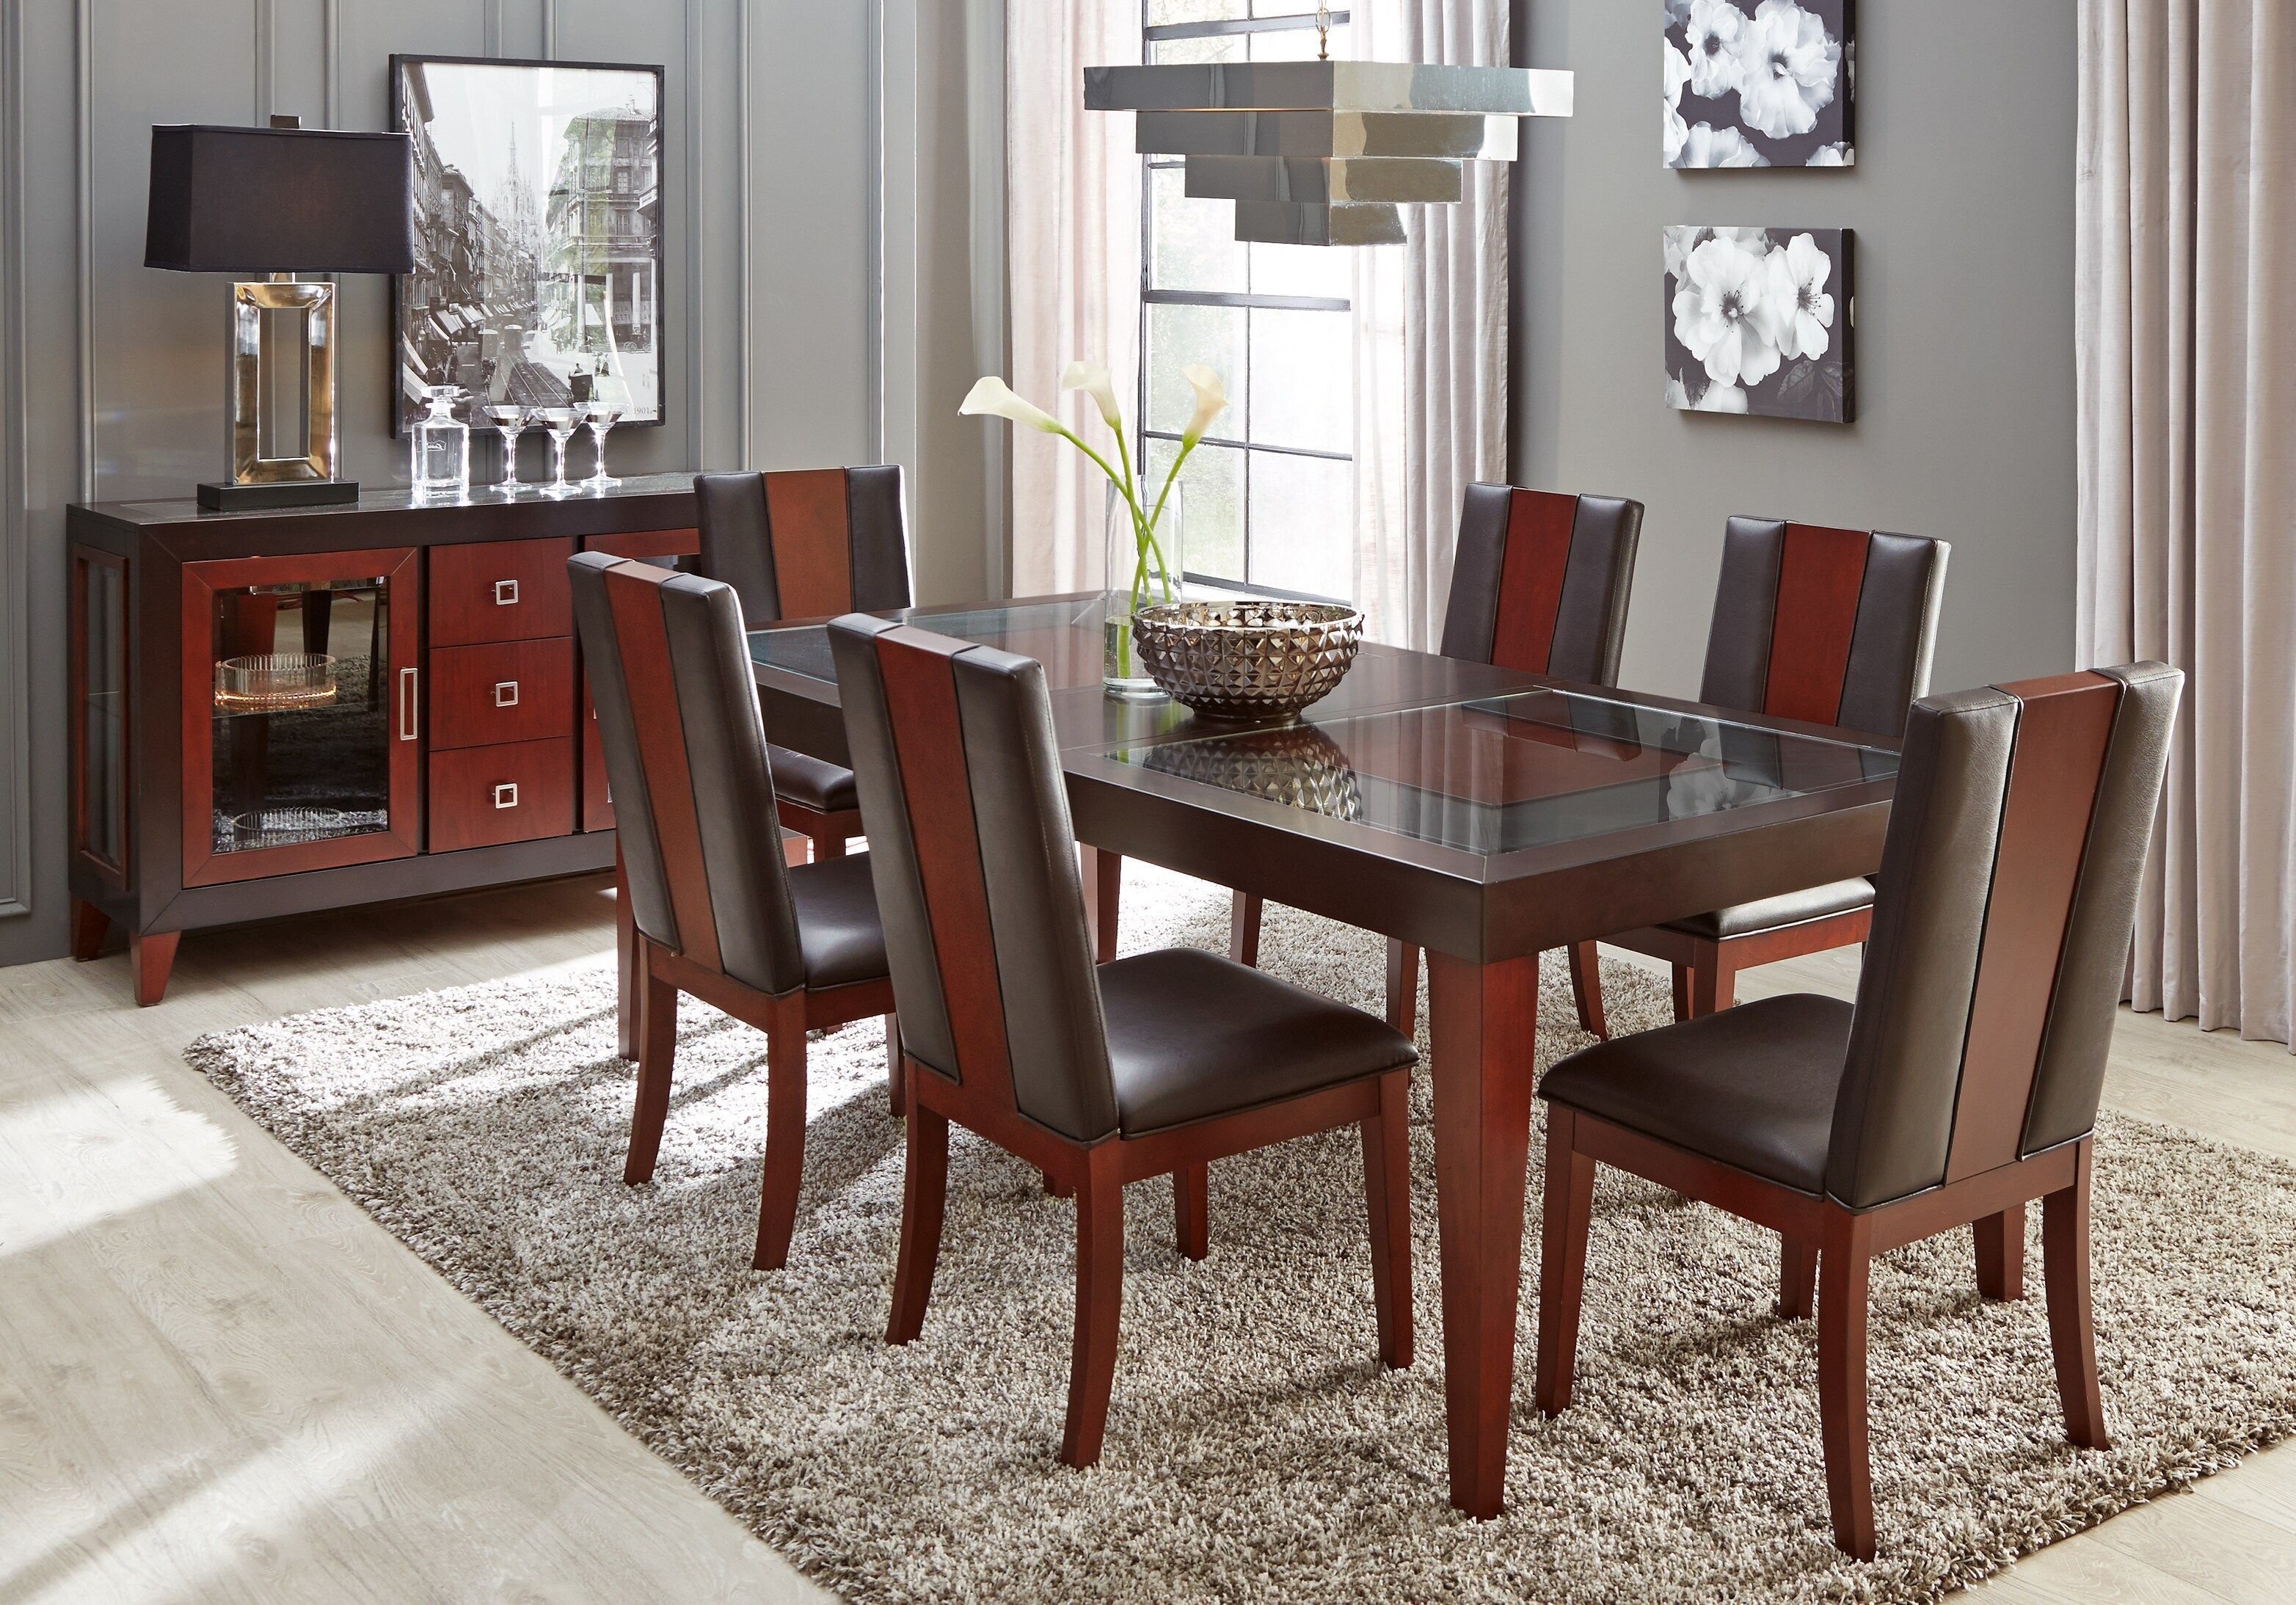 Sofia Vergara Savona Chocolate 5 Pc Rectangle Dining Room With